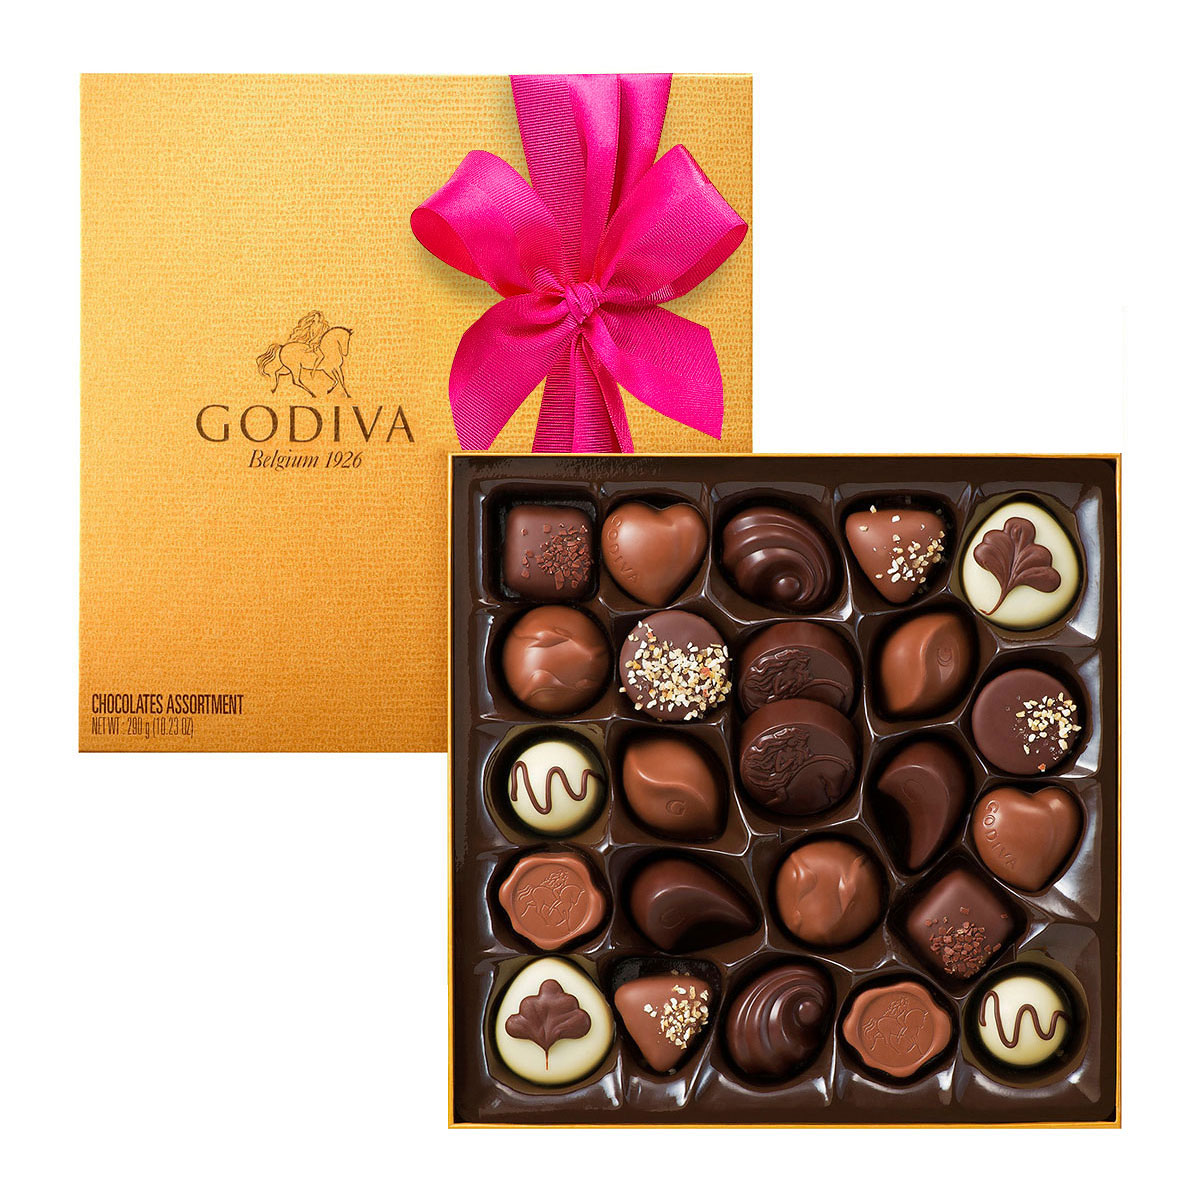 Godiva romantic gift box for her delivery in europe for Go diva